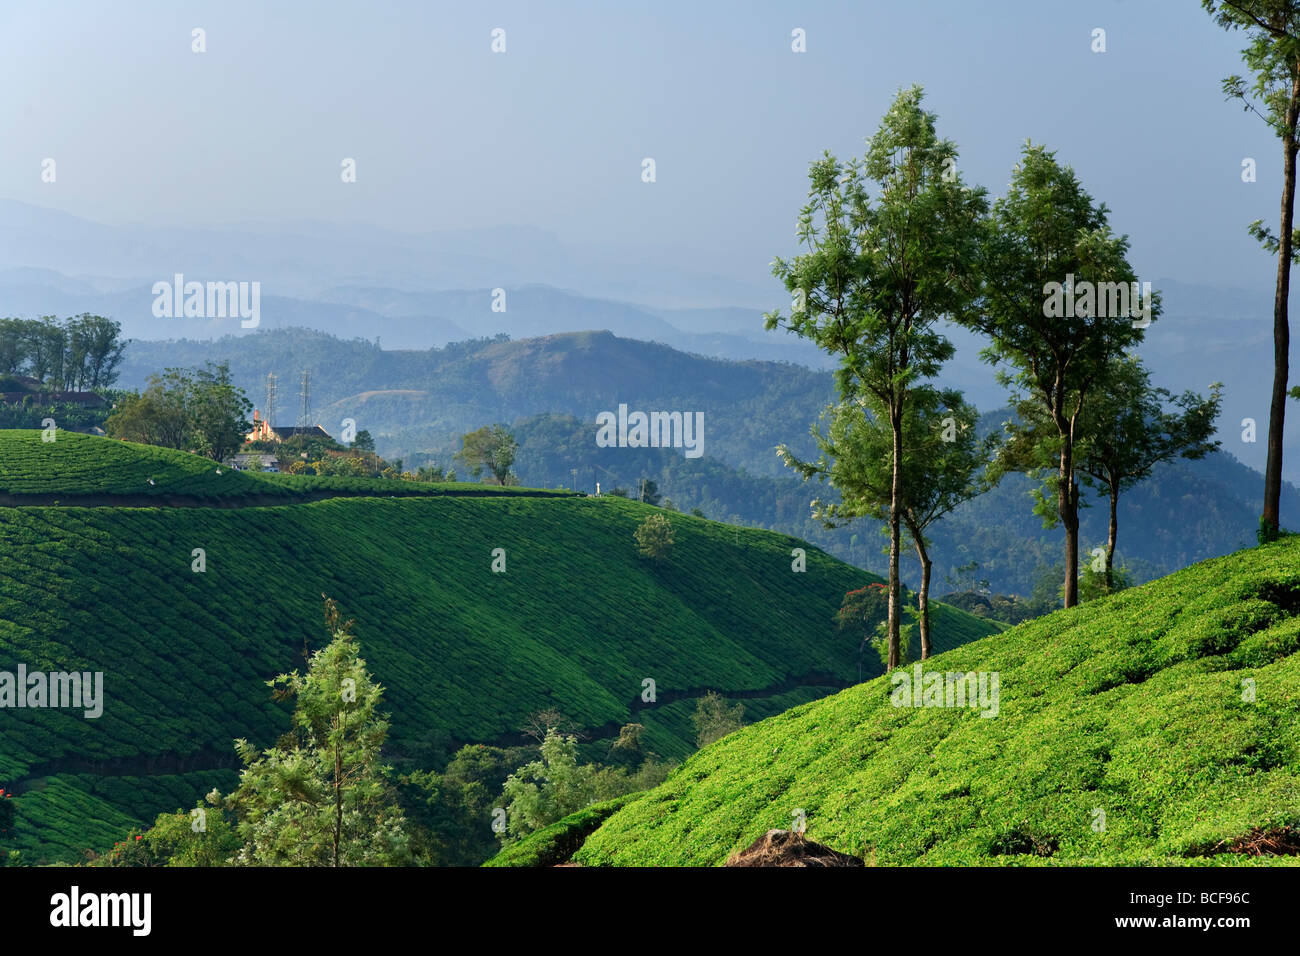 Tea Plantations, Munnar, Western Ghats, Kerala, India - Stock Image